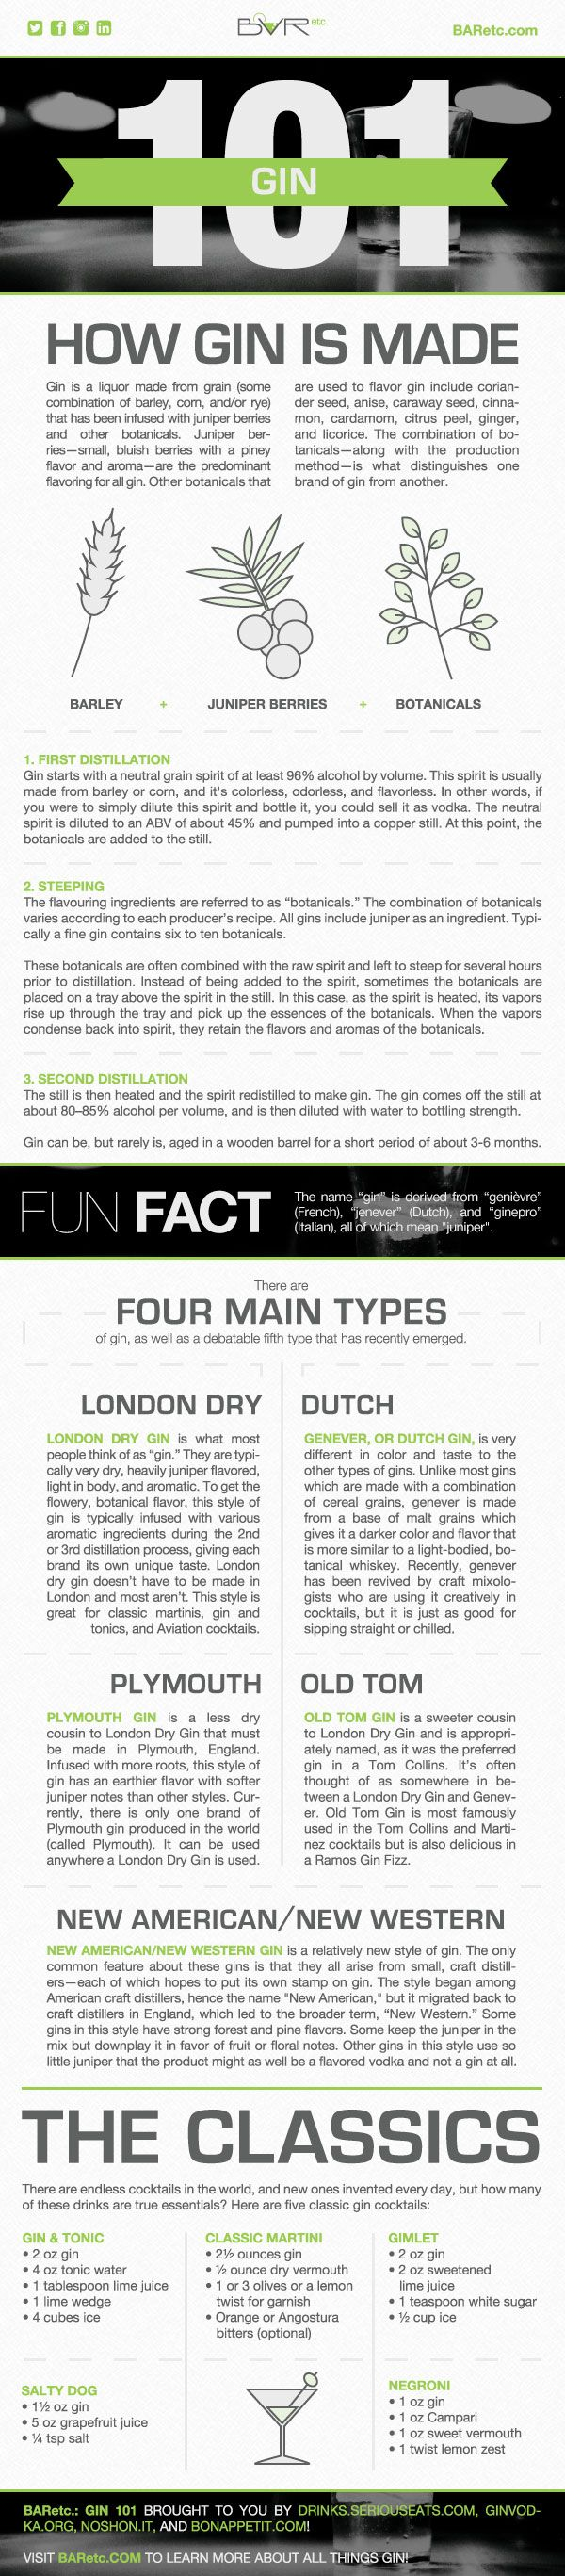 Gin 101 Infographic, designed by Emily Harris, Graphic Design Coordinator at BARetc.